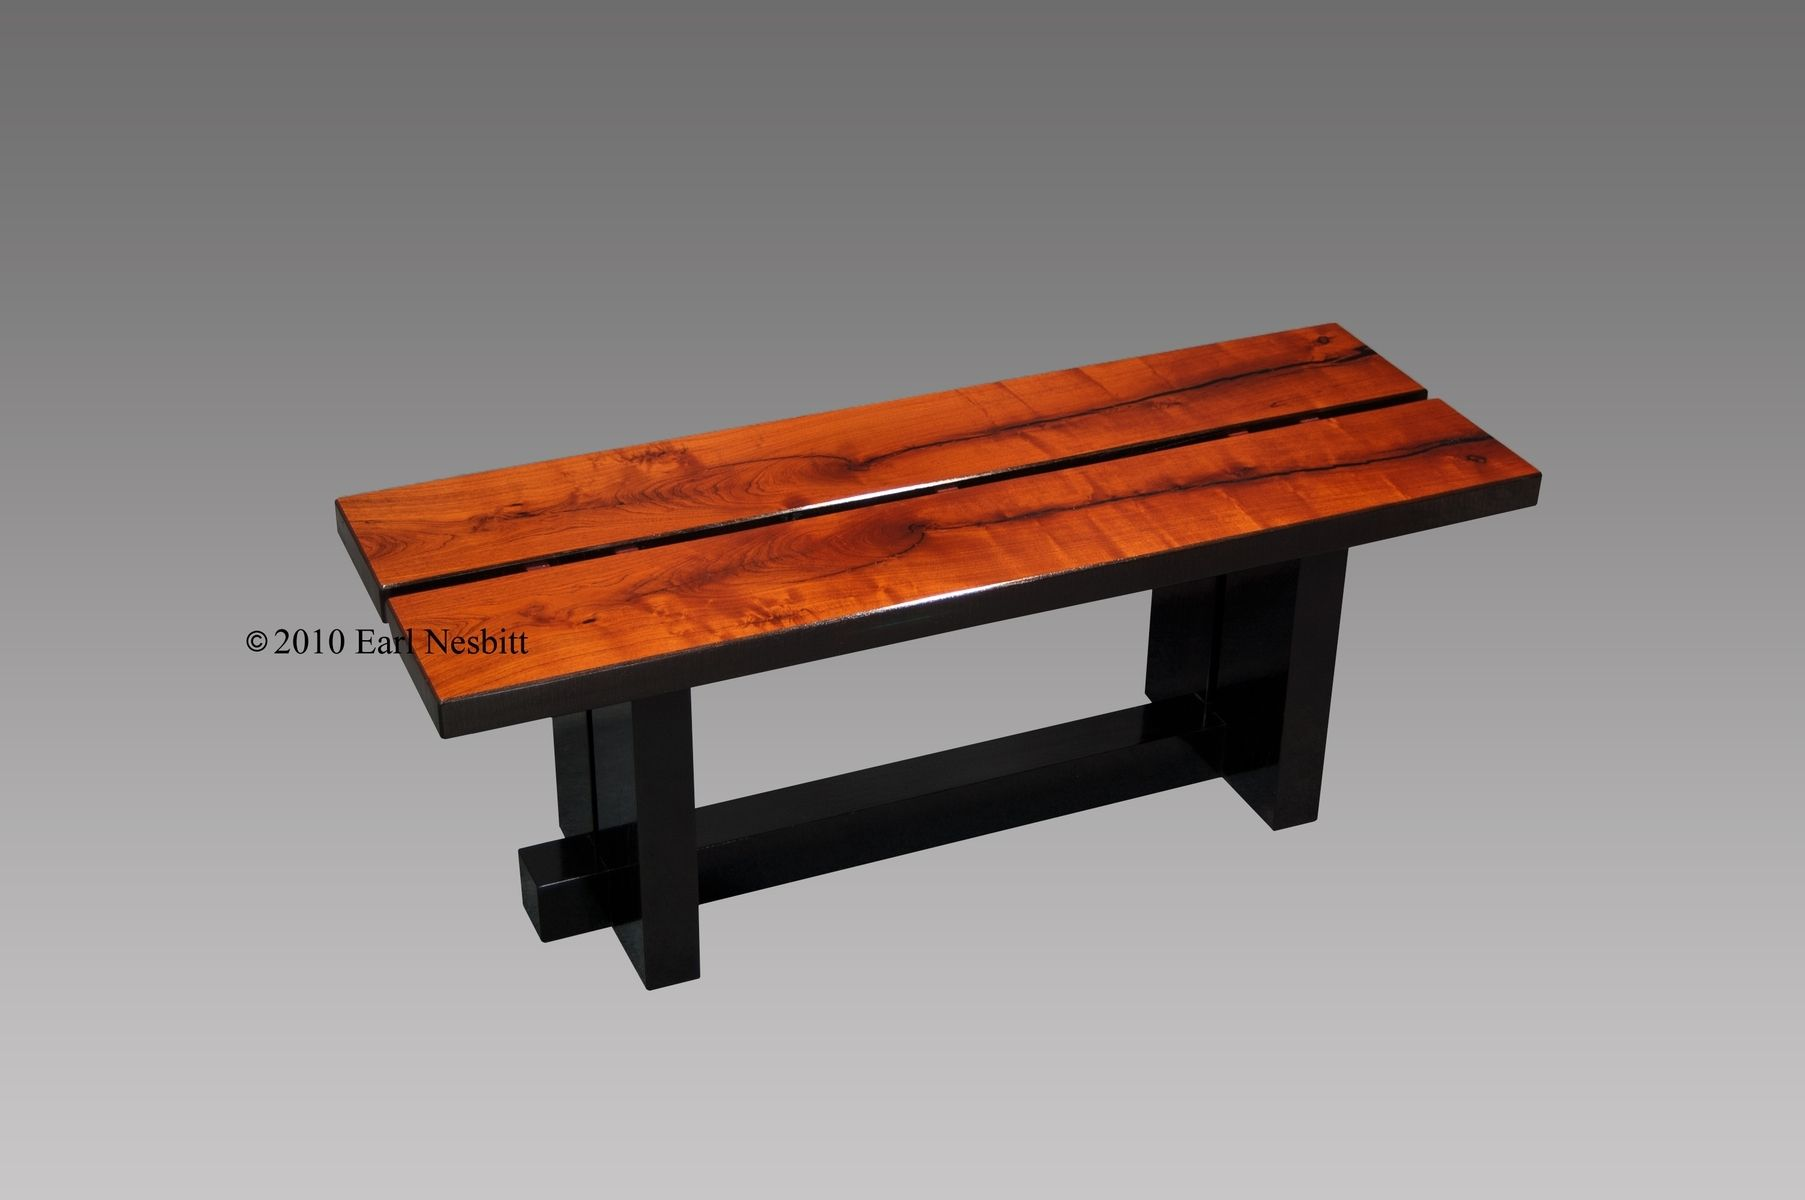 Custom Coffee Table Bench Mesquite by Earl Nesbitt Fine